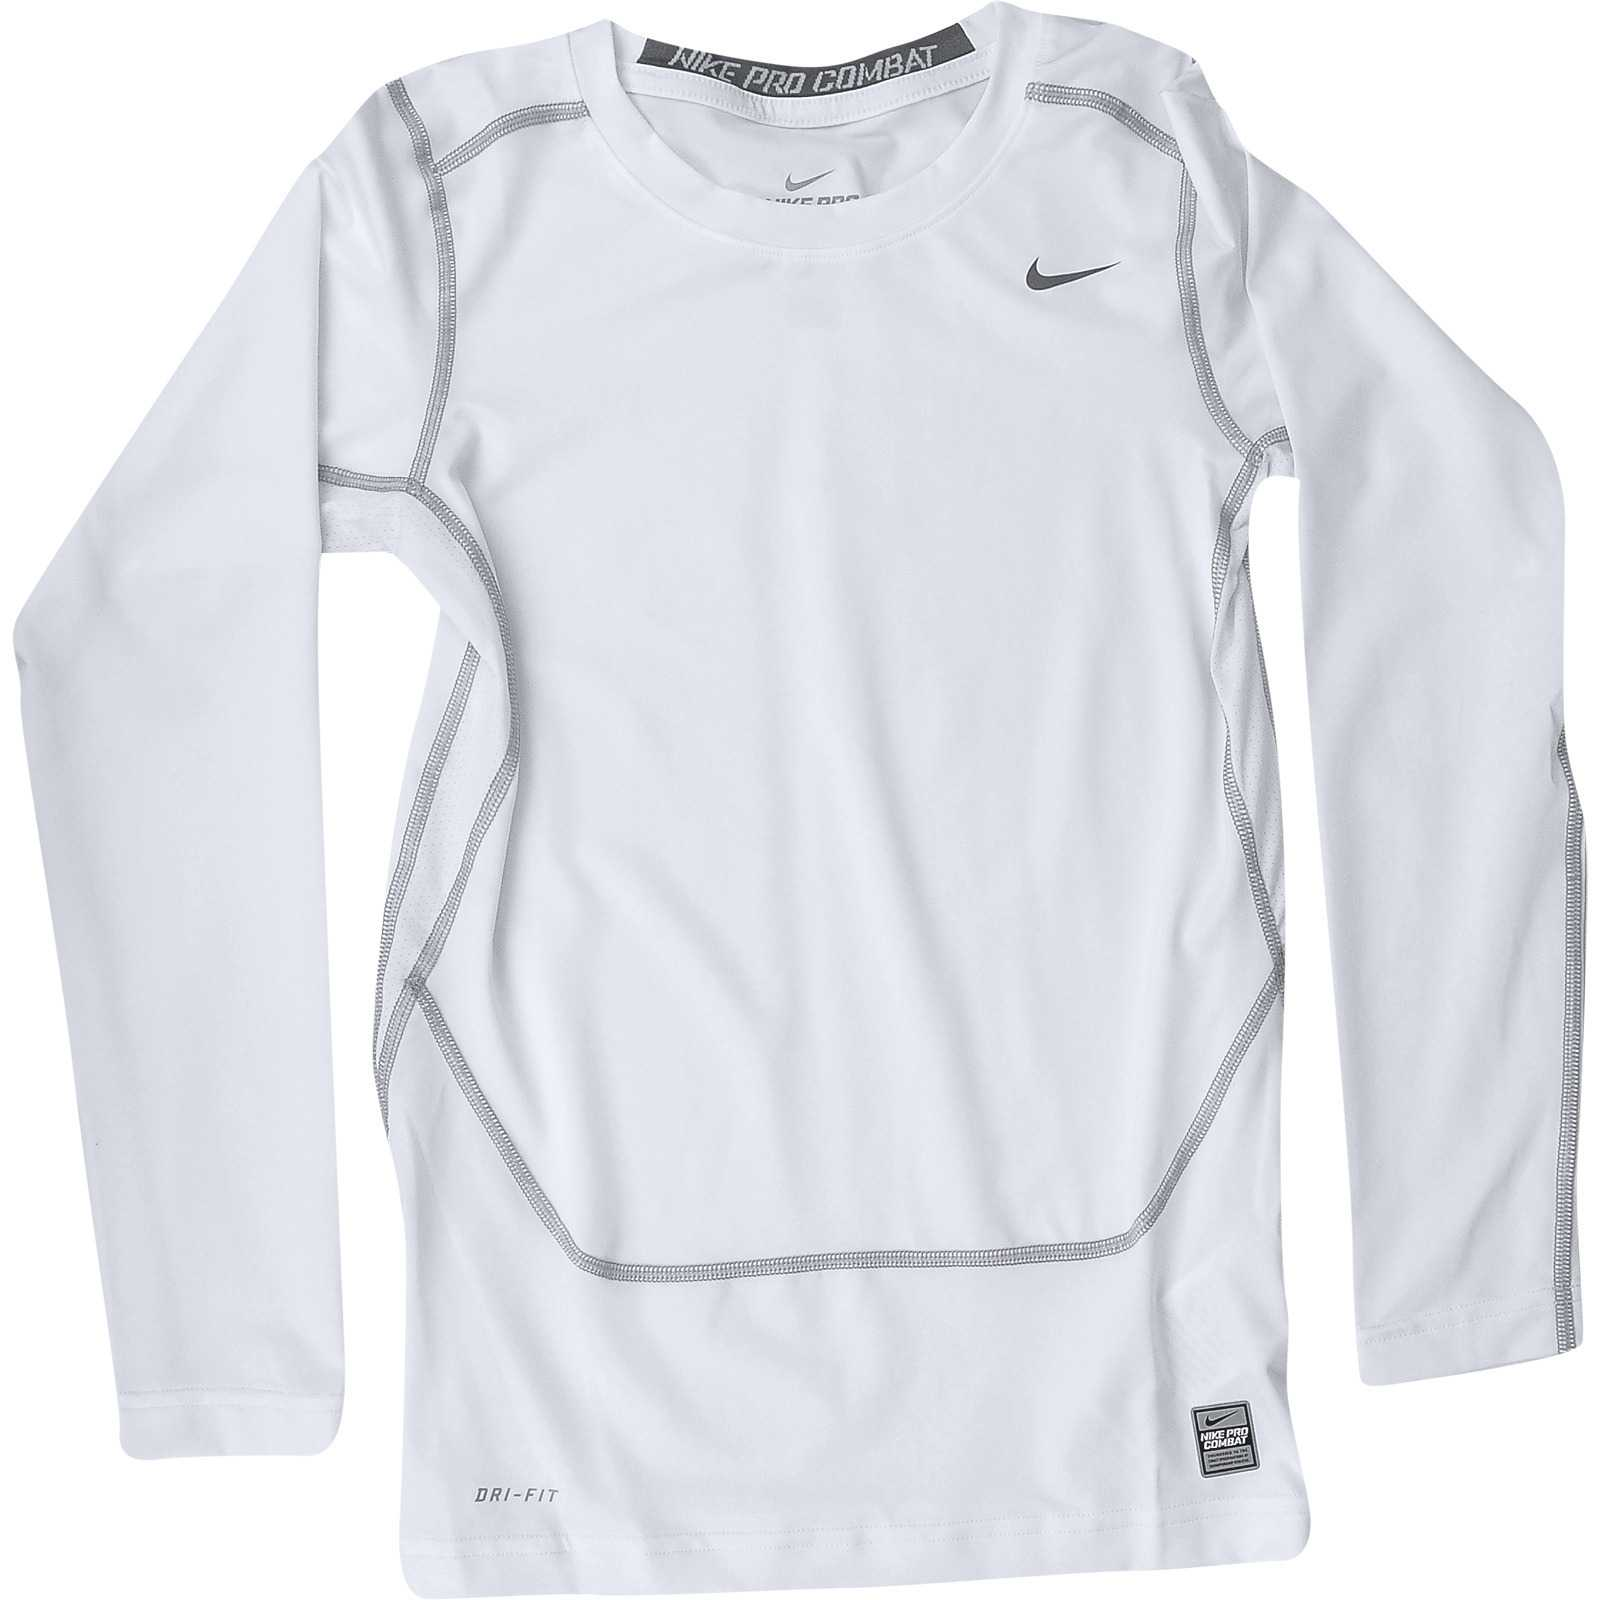 Bluza copii Nike Core Comp LS TOP Longsleeve 522802-100